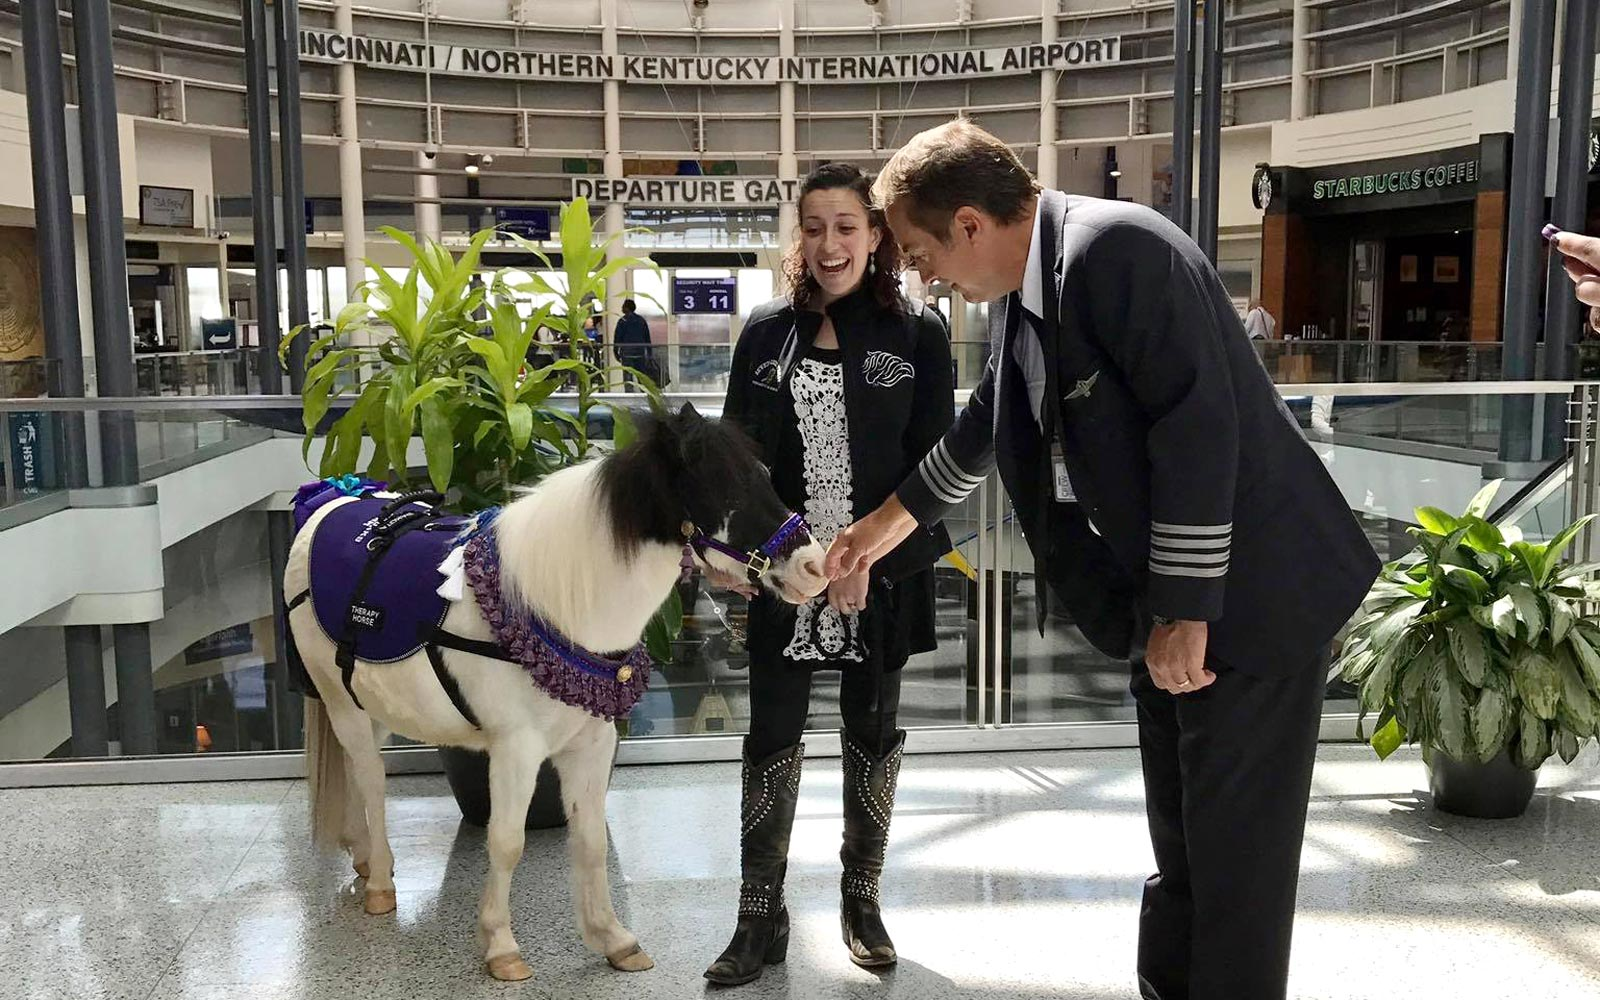 Miniature Therapy Horses at CVG